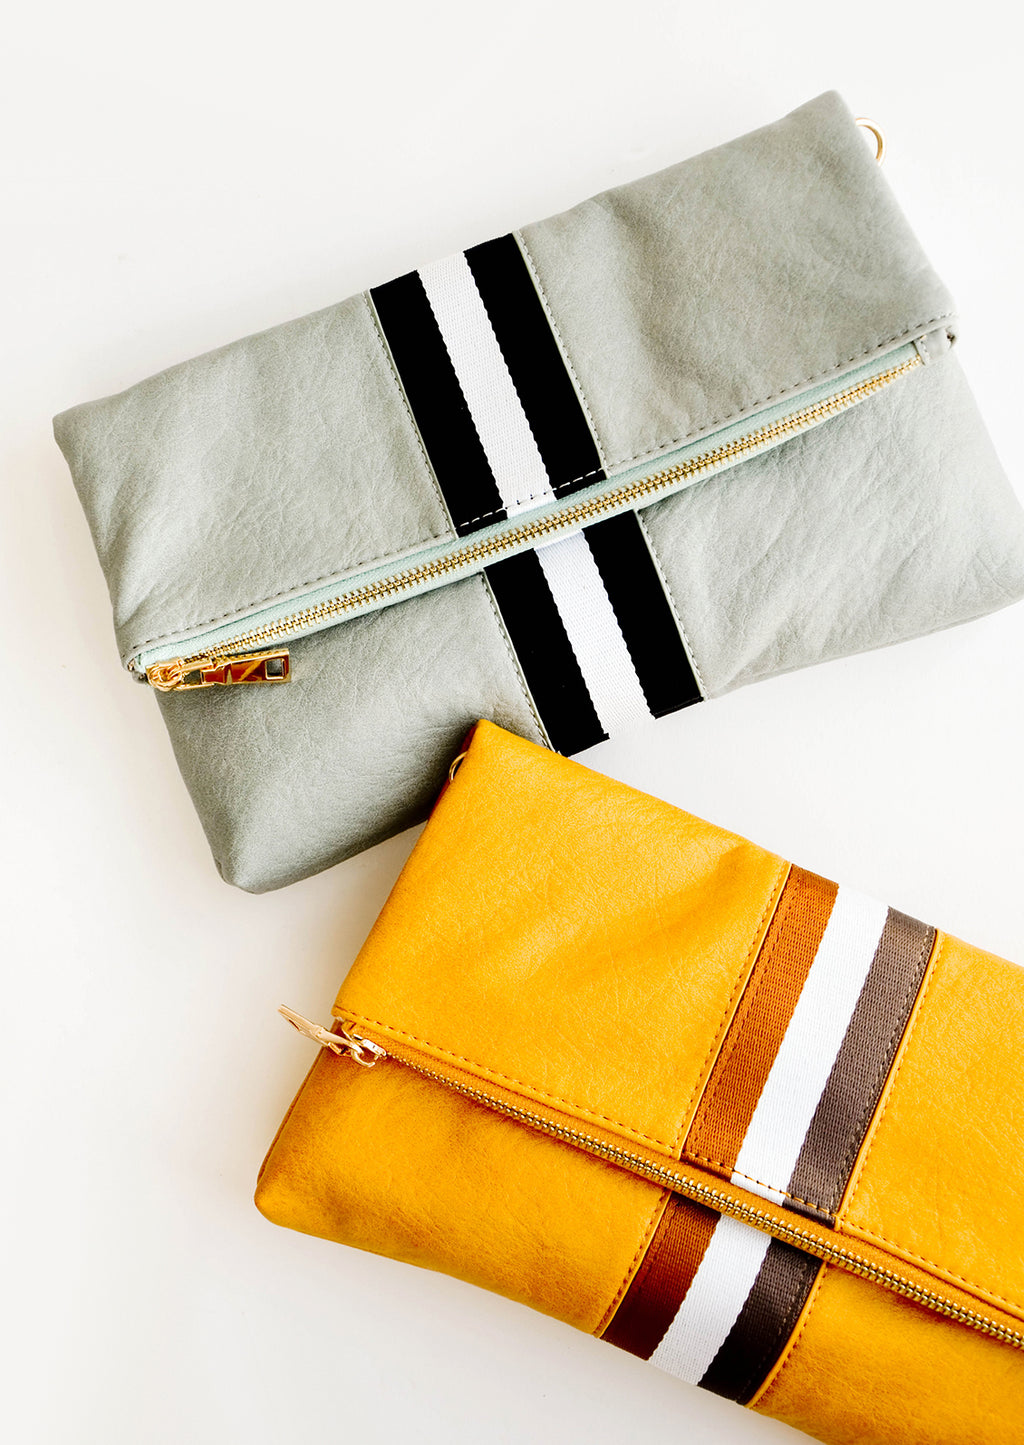 1: One mint green fold over clutch with a trio of black and white vertical stripes and one mustard yellow fold over clutch with a trio of white and brown vertical stripes.